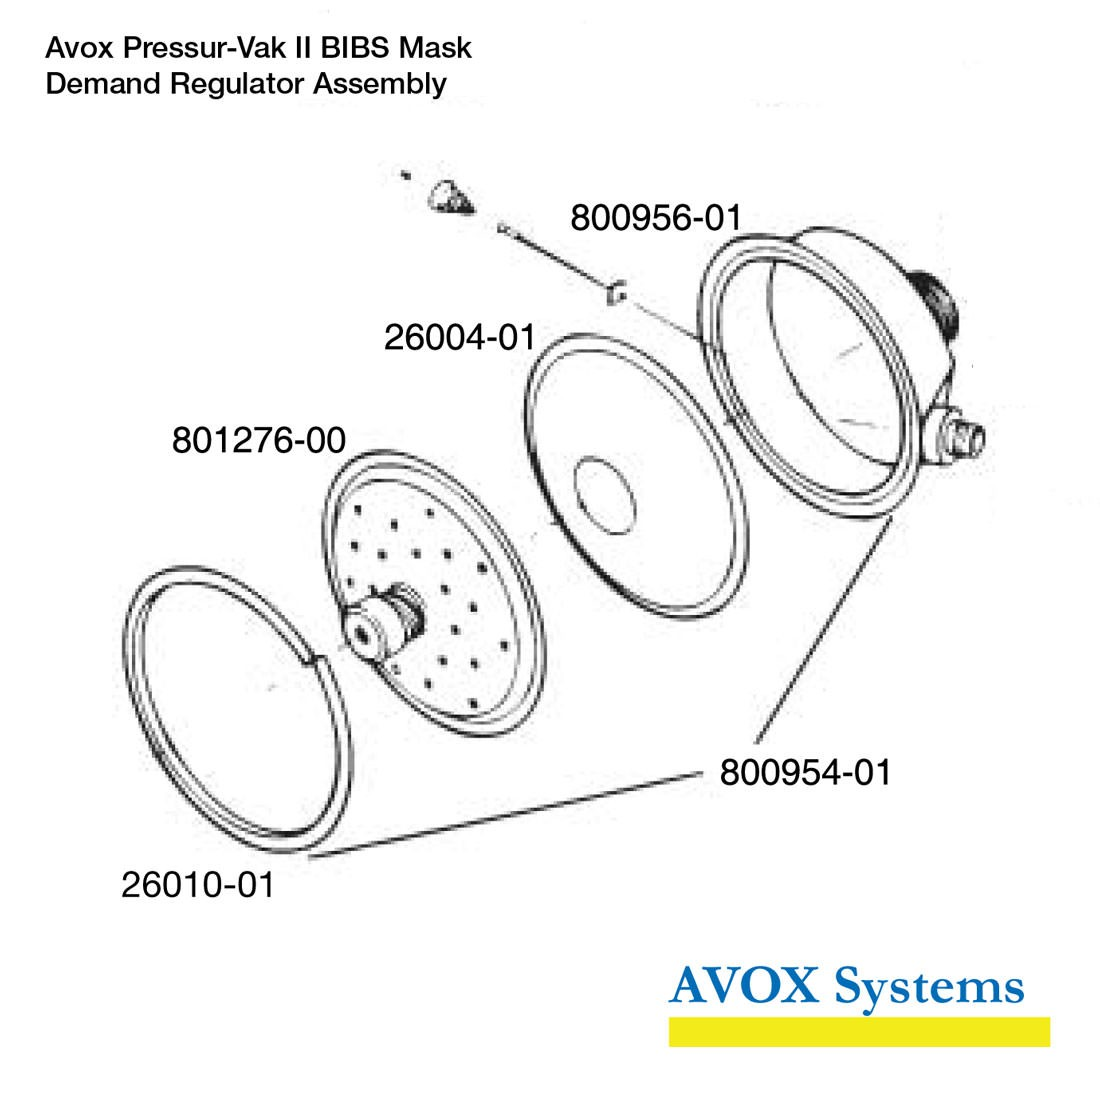 Avox Pressur-Vak II BIBS Mask - Demand Regulator Assembly